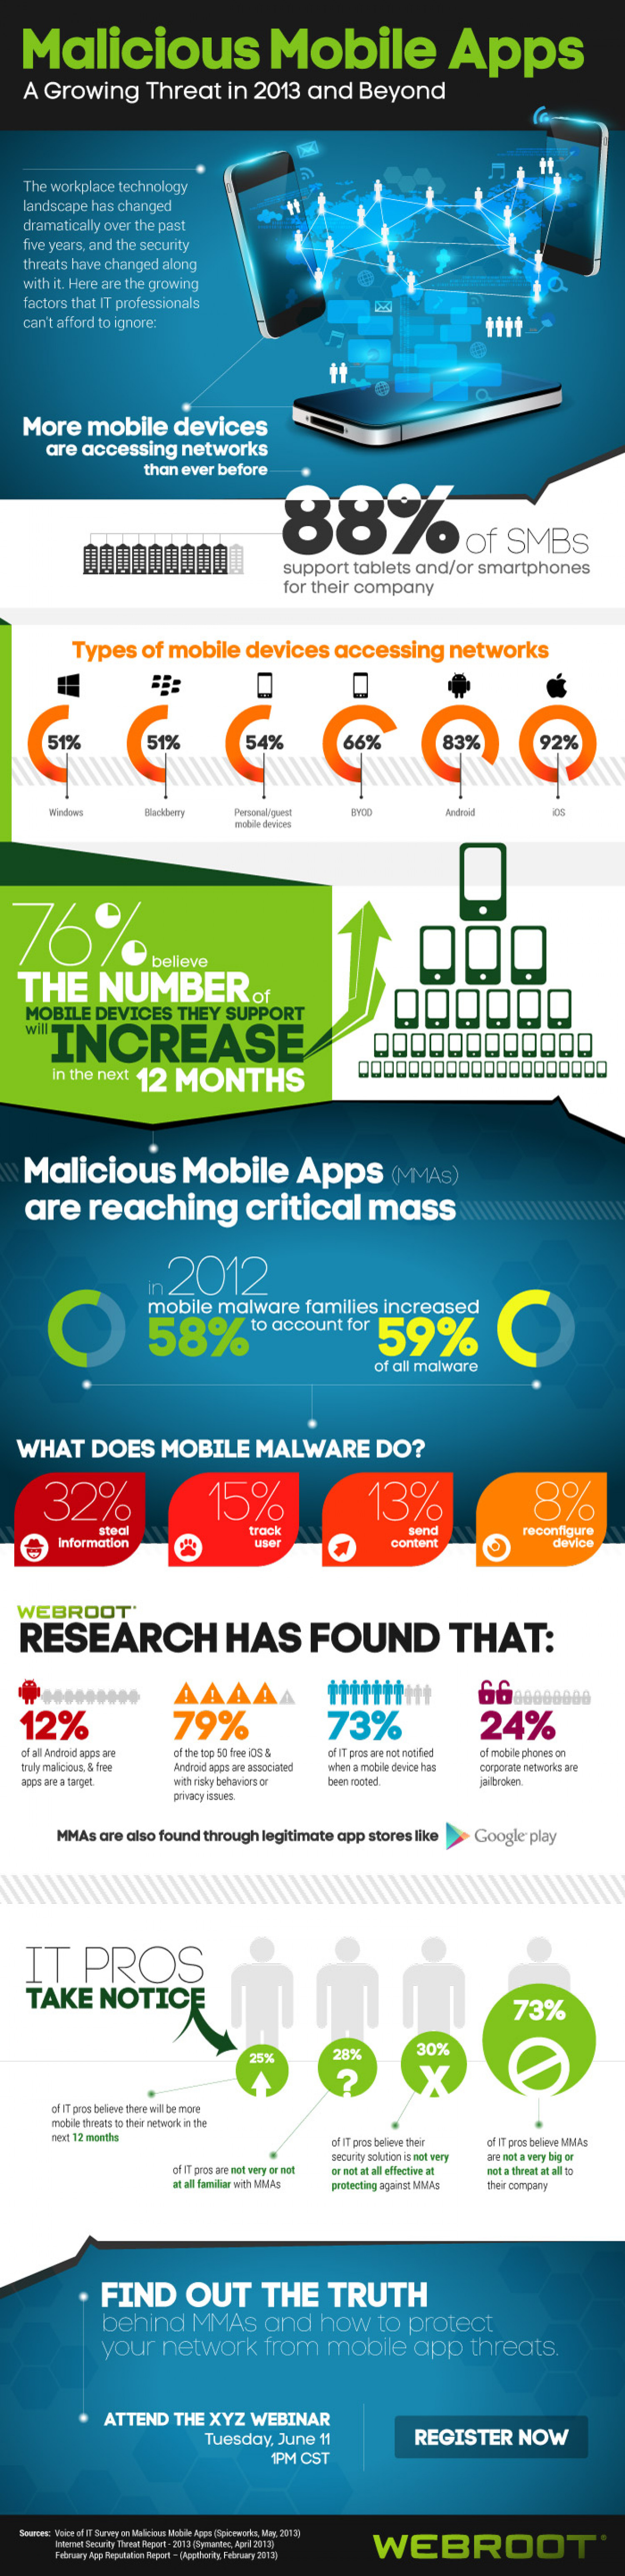 Malicious Mobile Apps Infographic